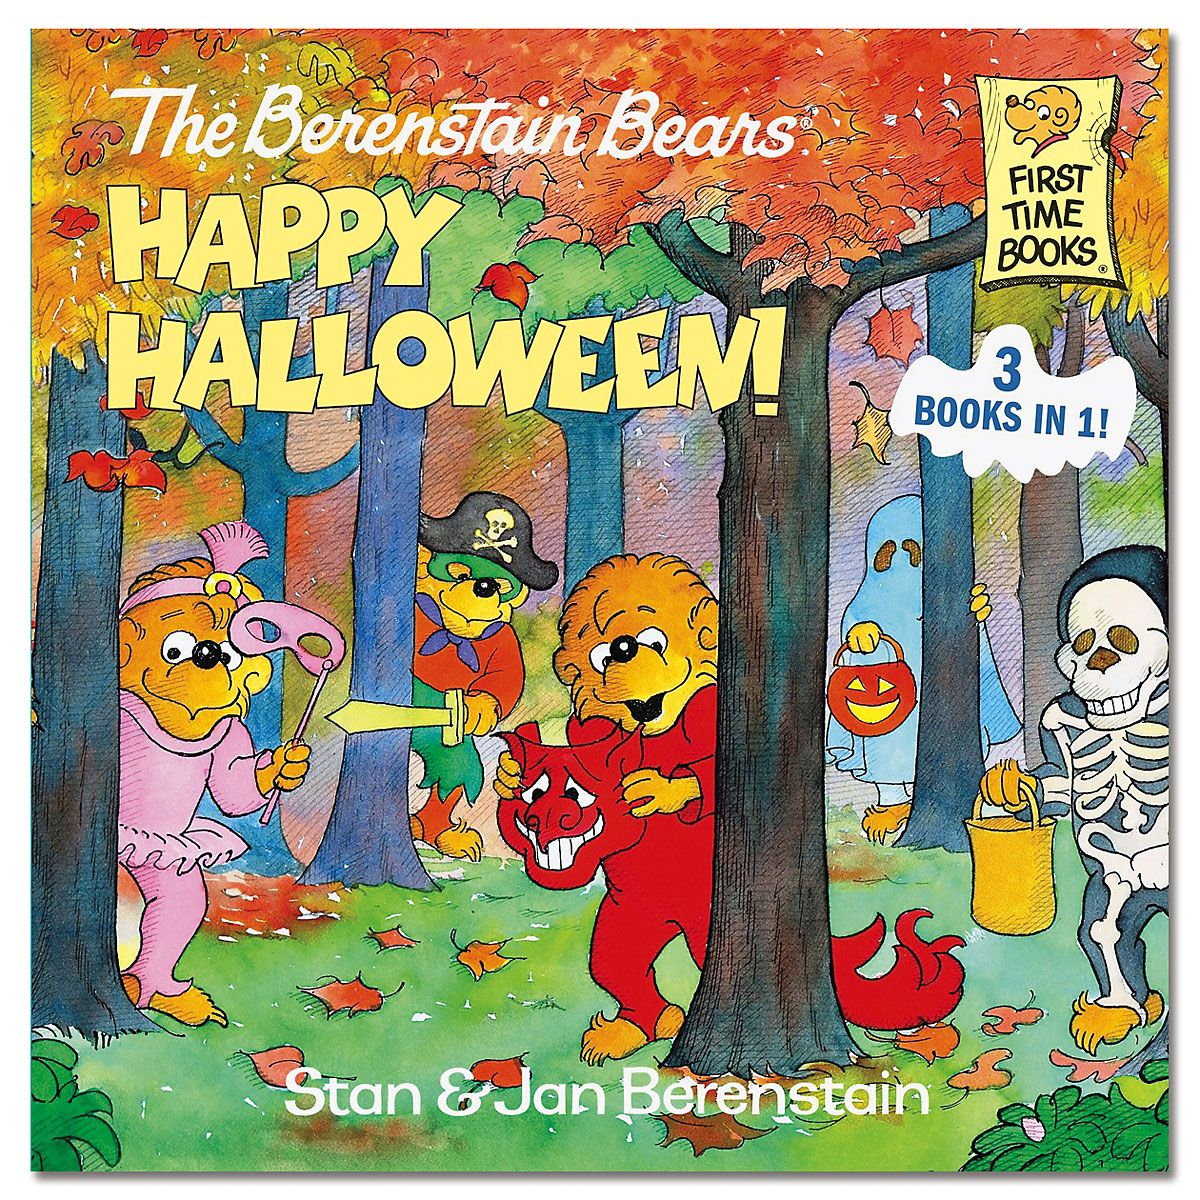 Berenstain Bears Happy Halloween 3 Books in 1